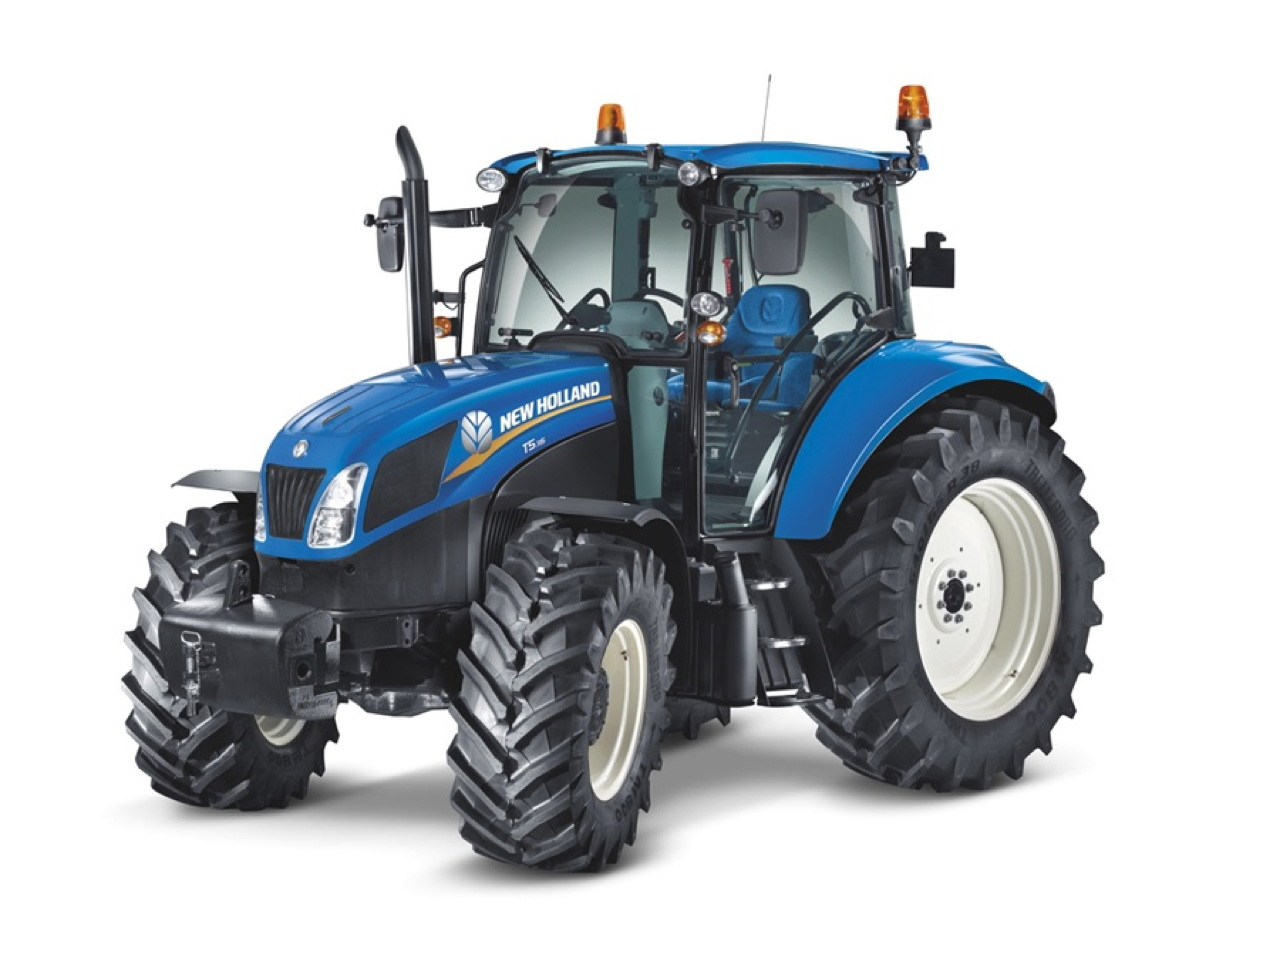 New Holland T5 Utility T5.85 Utility